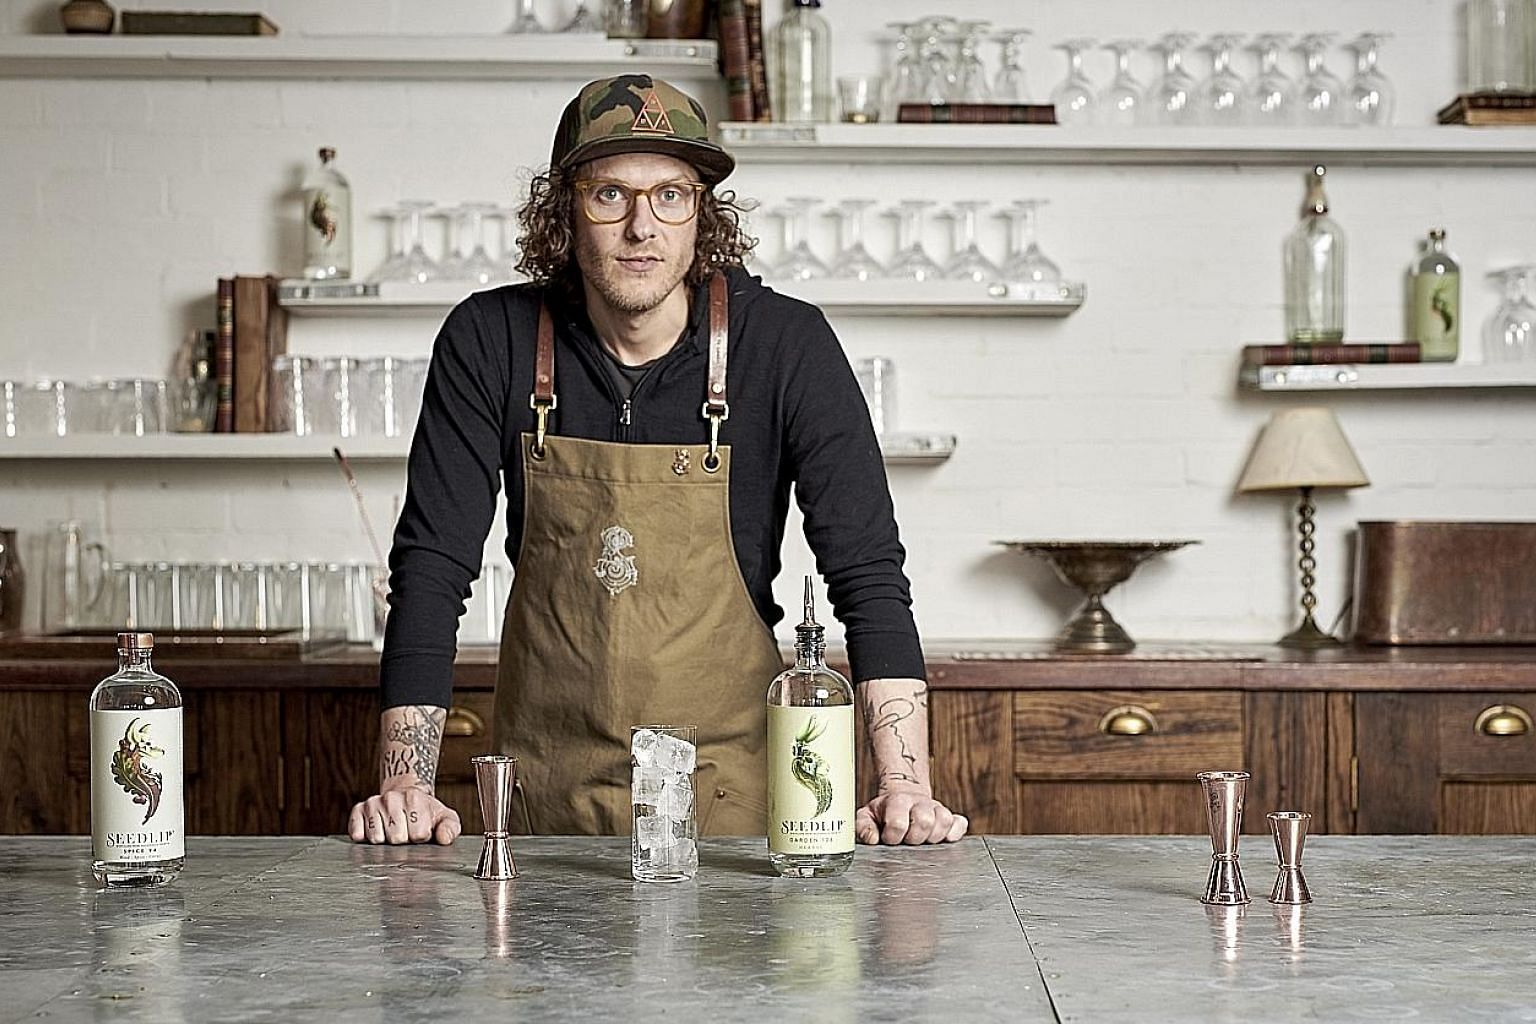 Seedlip founder Ben Branson has not drunk alcohol since launching the spirit.